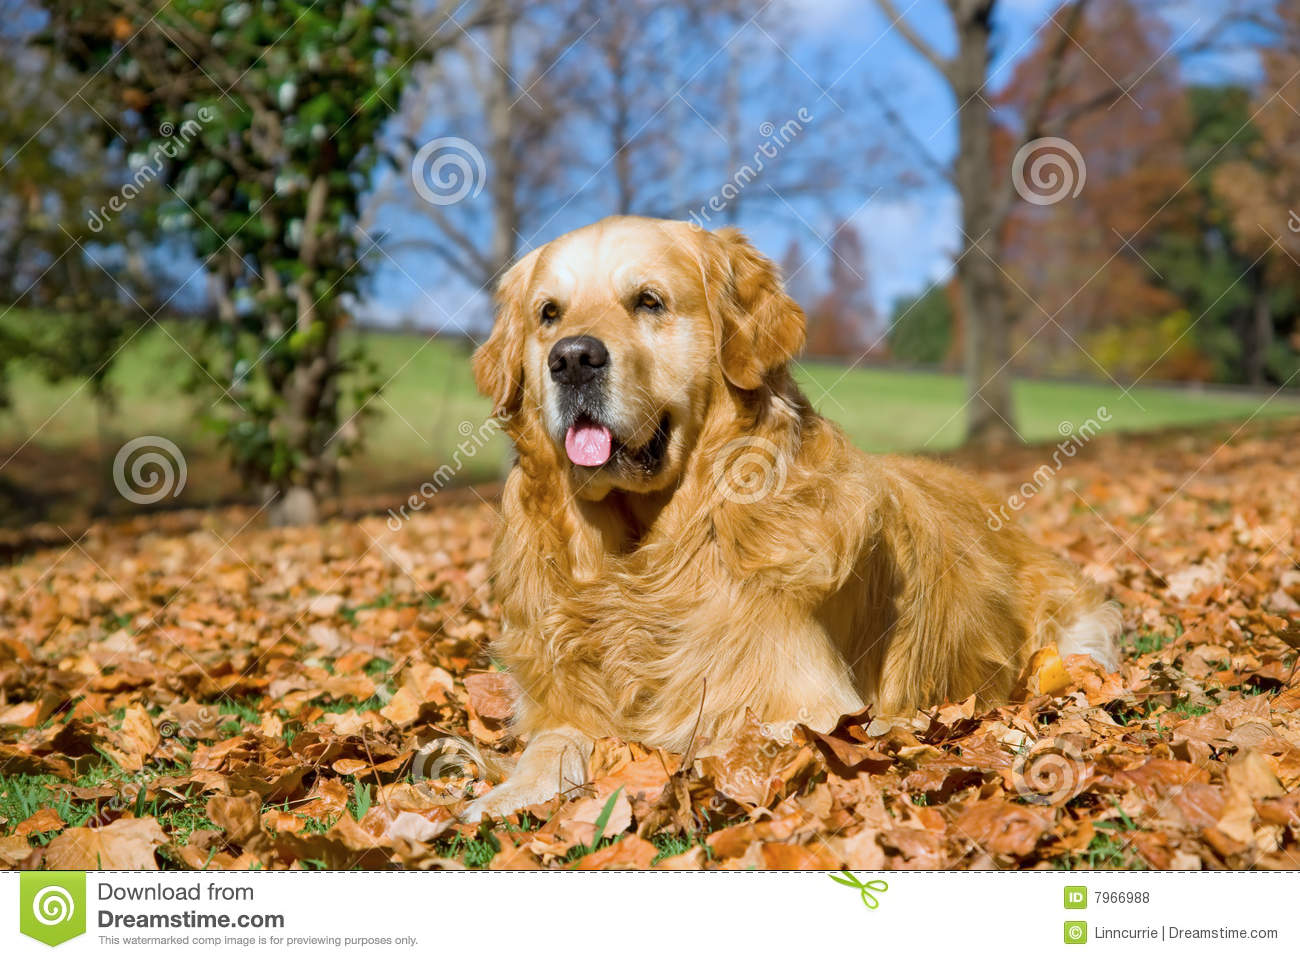 Cute Kid Wallpapers Free Download Golden Retriever Gr Adult Dog Outdoors Royalty Free Stock